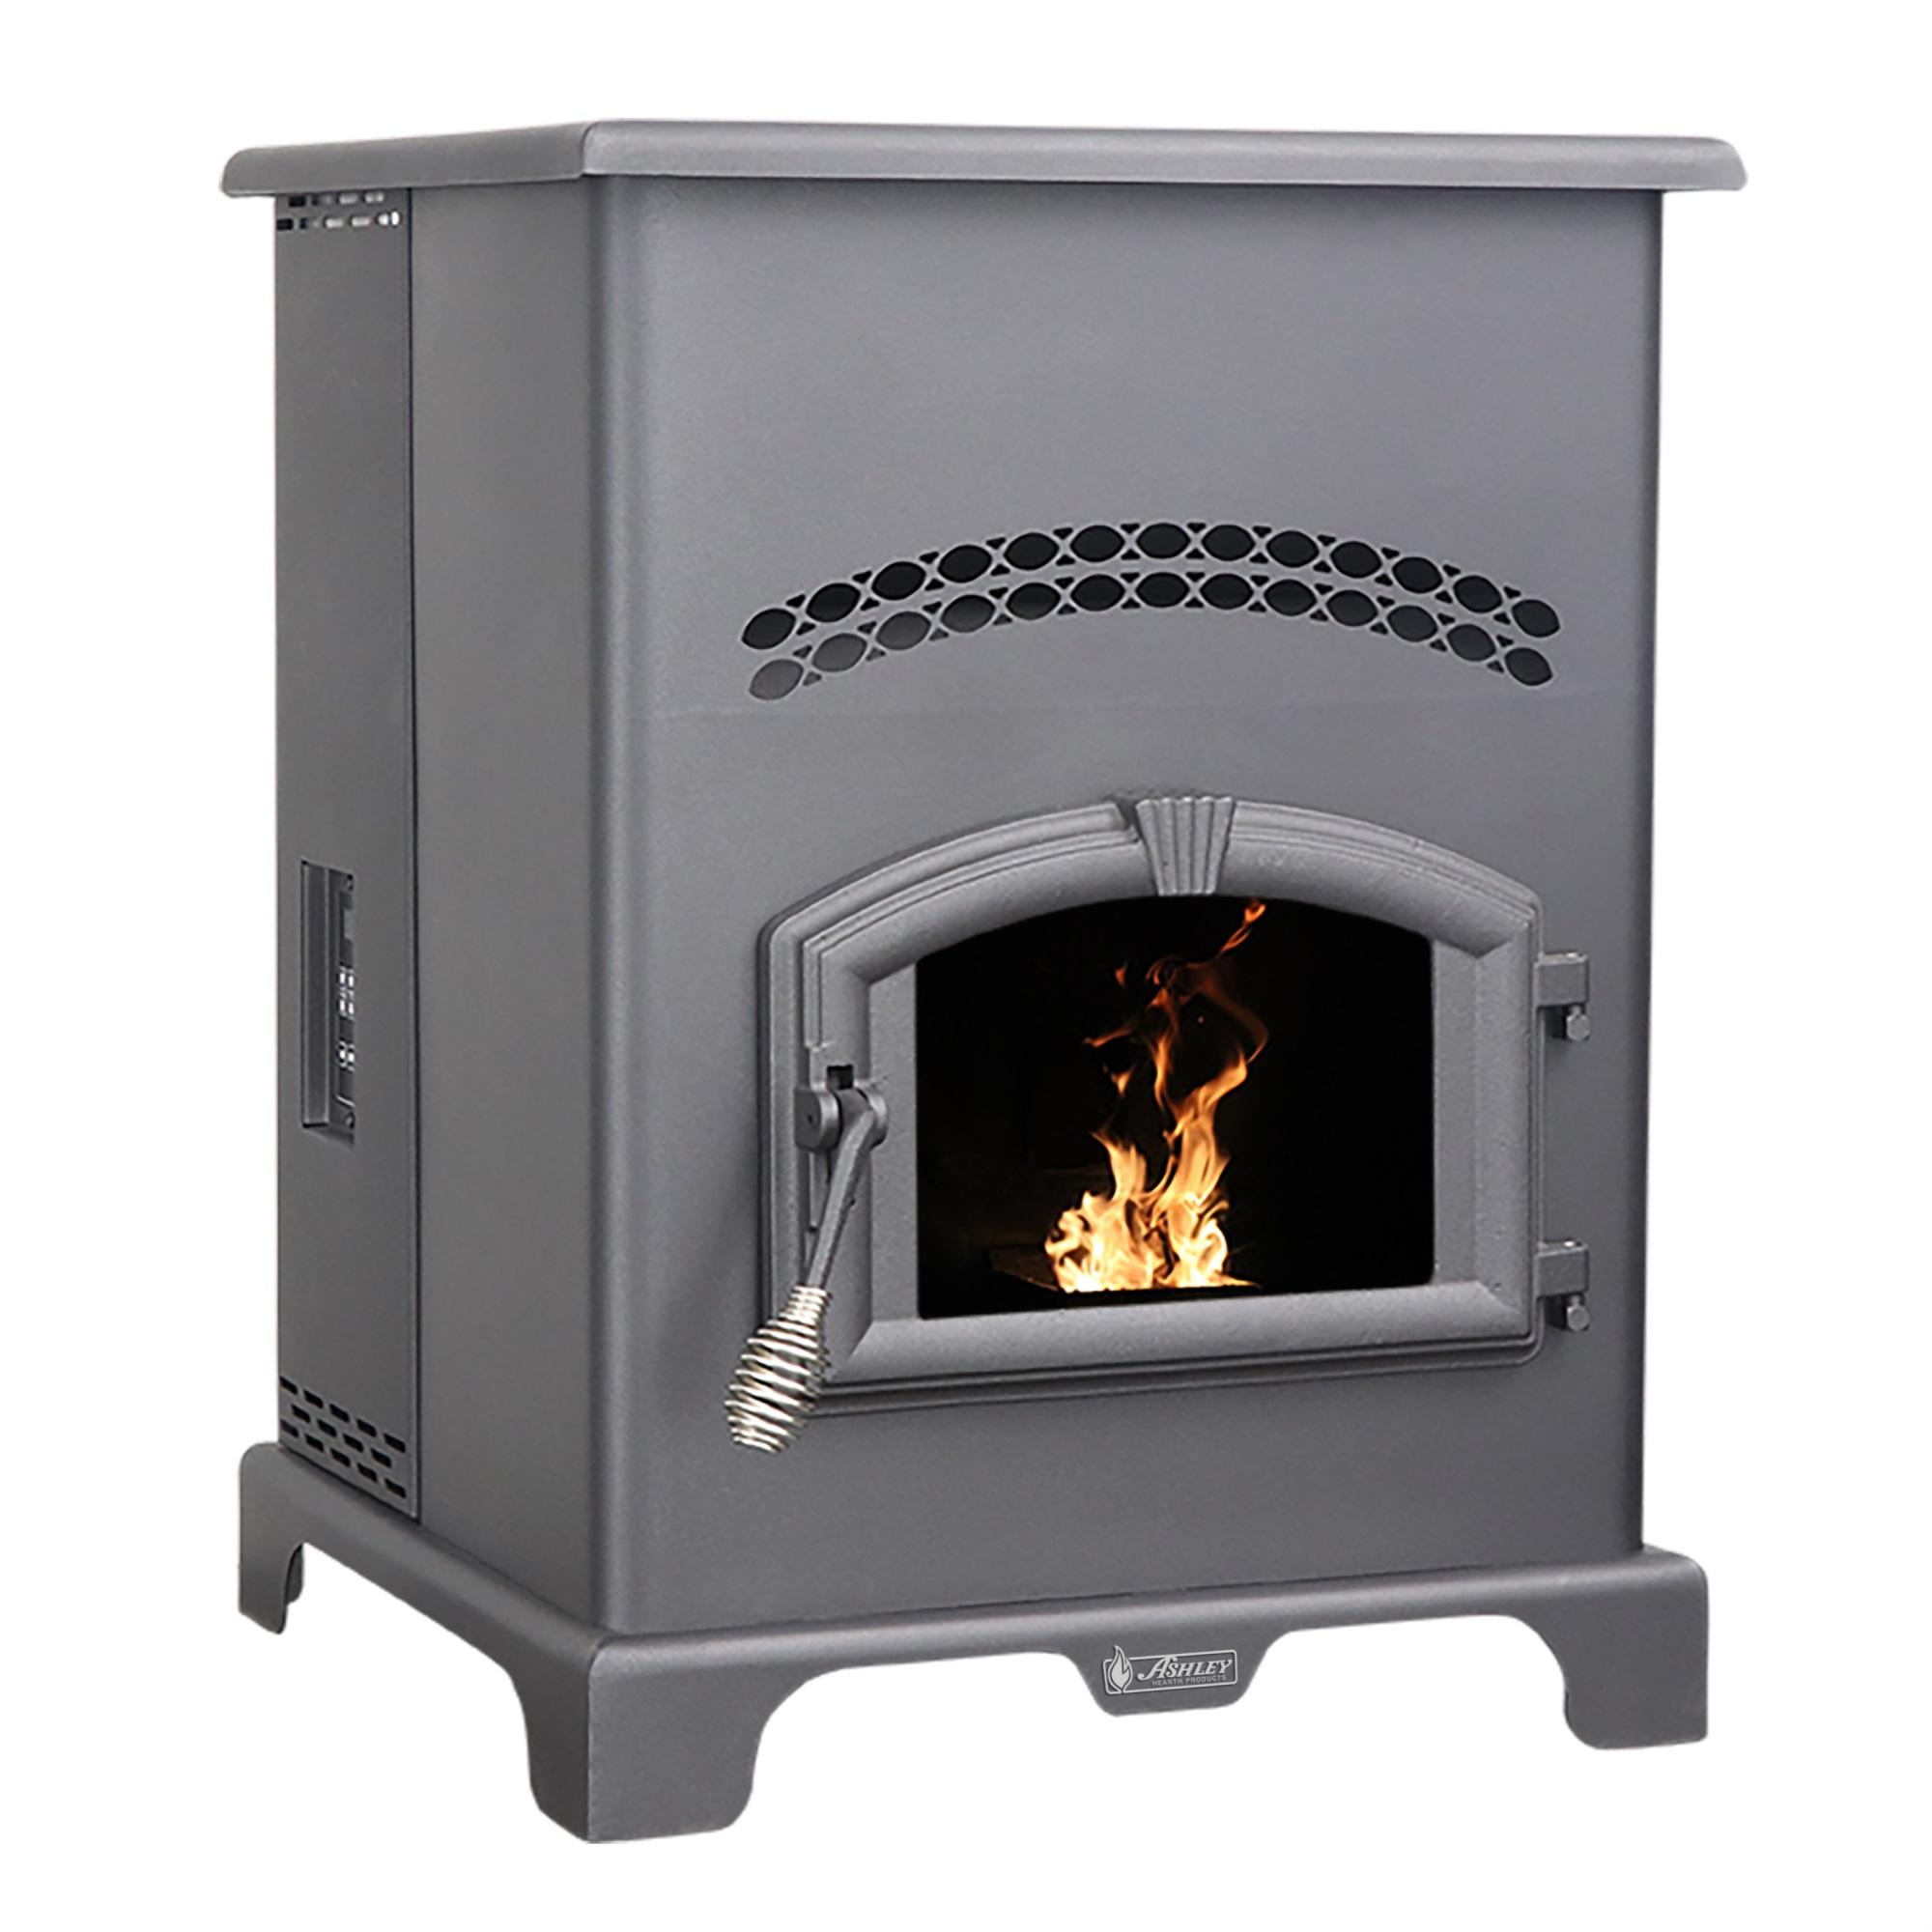 2,200 Sq Ft EPA Certified Pellet Stove with 130 lb Hopper